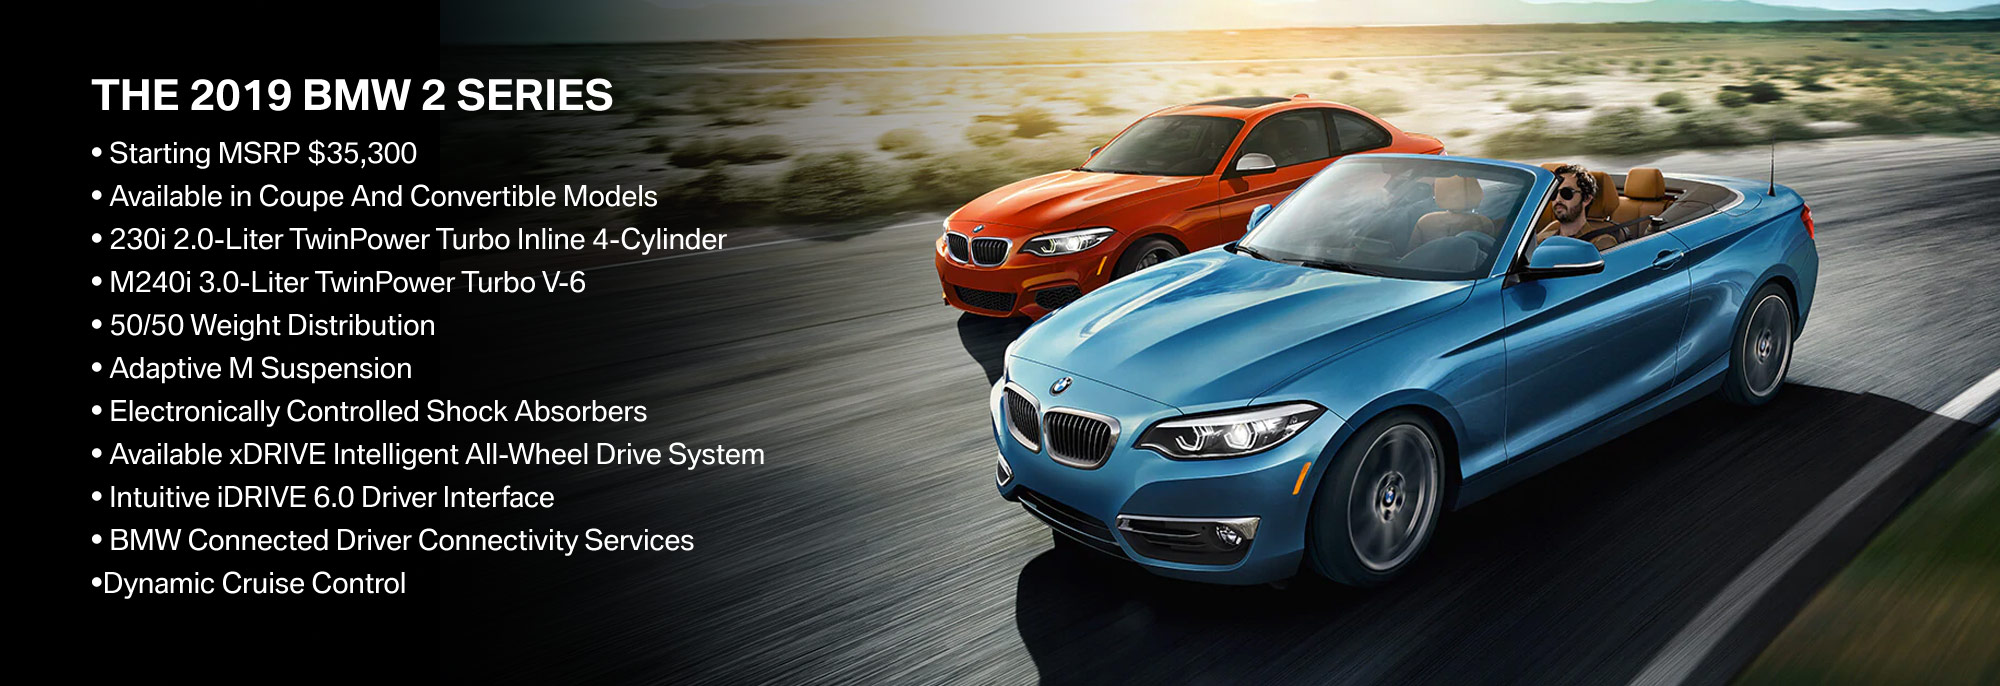 New 2019 BMW 2 Series Offer